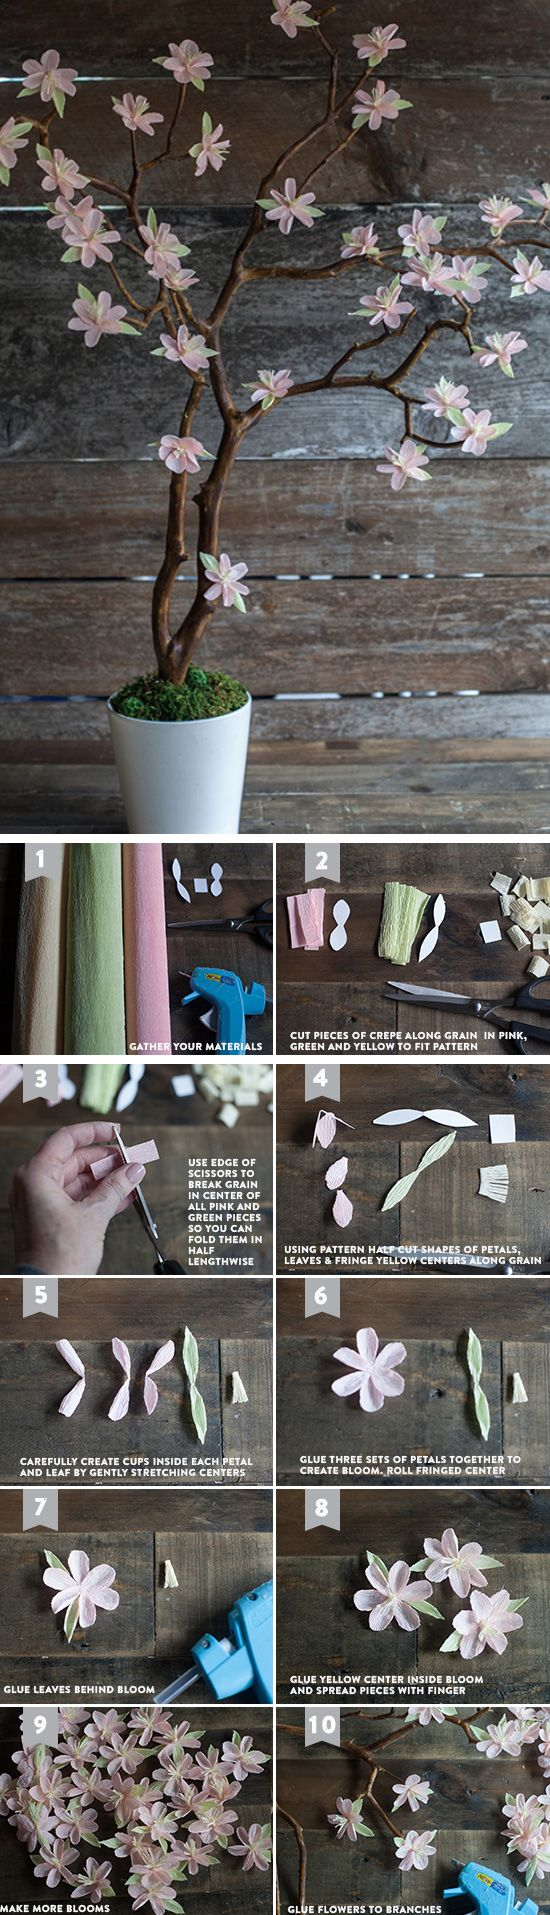 Crepe Paper Cherry Blossom Branches | Click Pic for 24 DIY Spring Wedding Ideas on a Budget | DIY Spring Wedding Decorations on a Budget: